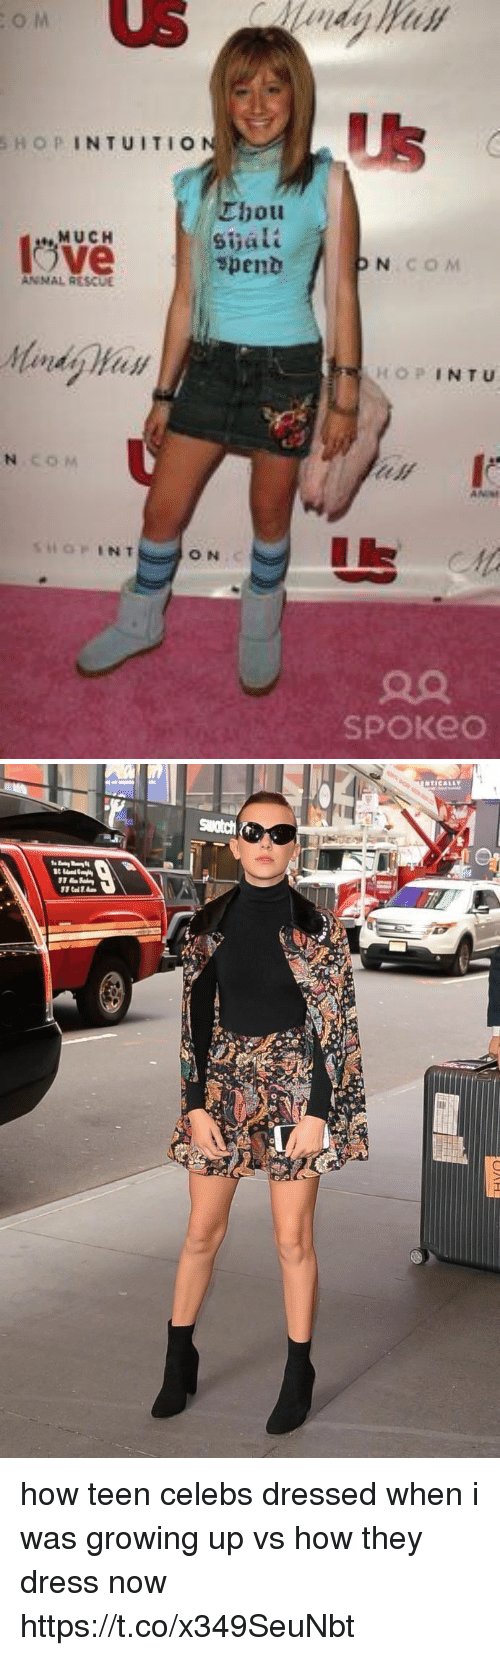 Growing Up, Dress, and Girl Memes: o M  Us  SHOPINTUITIO  Thou  Sijalt  spent  MUCH  COM  Mandy Han  OPINTU  c o M  ON  90  SPOKeo how teen celebs dressed when i was growing up vs how they dress now https://t.co/x349SeuNbt